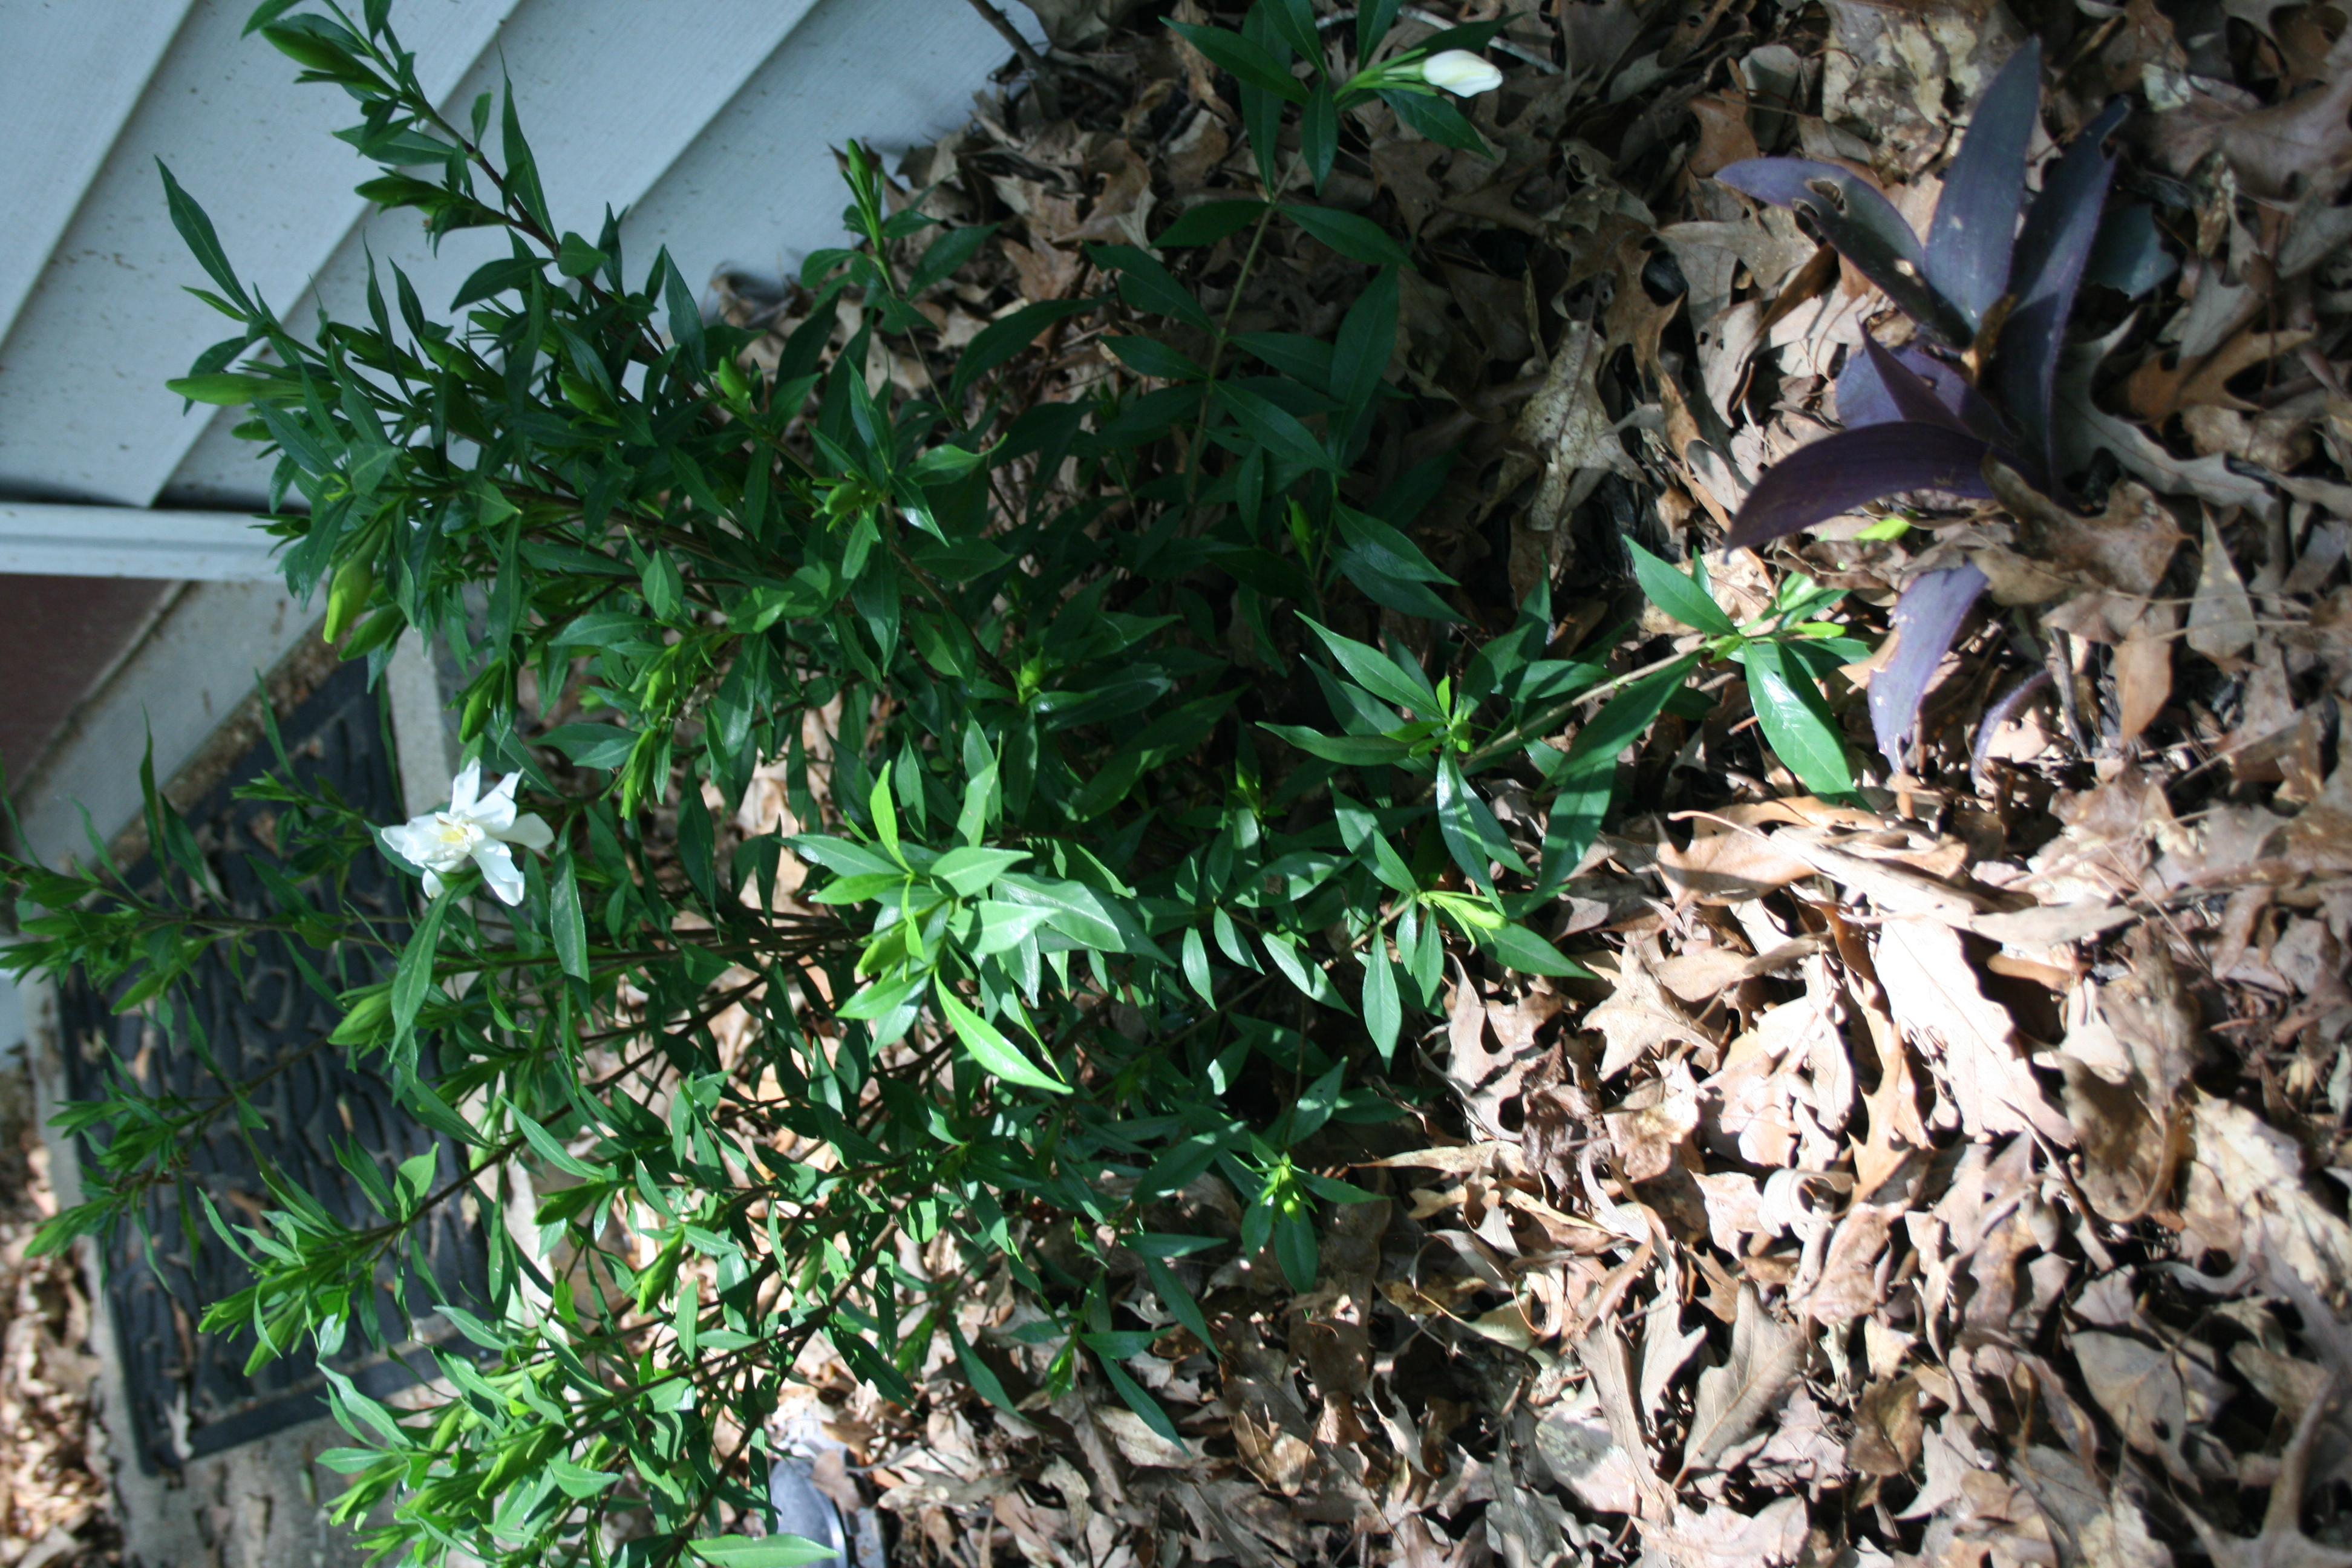 A layer of natural mulch around plants will help protect soil moisture from evaporation and provide organic material for your soils.